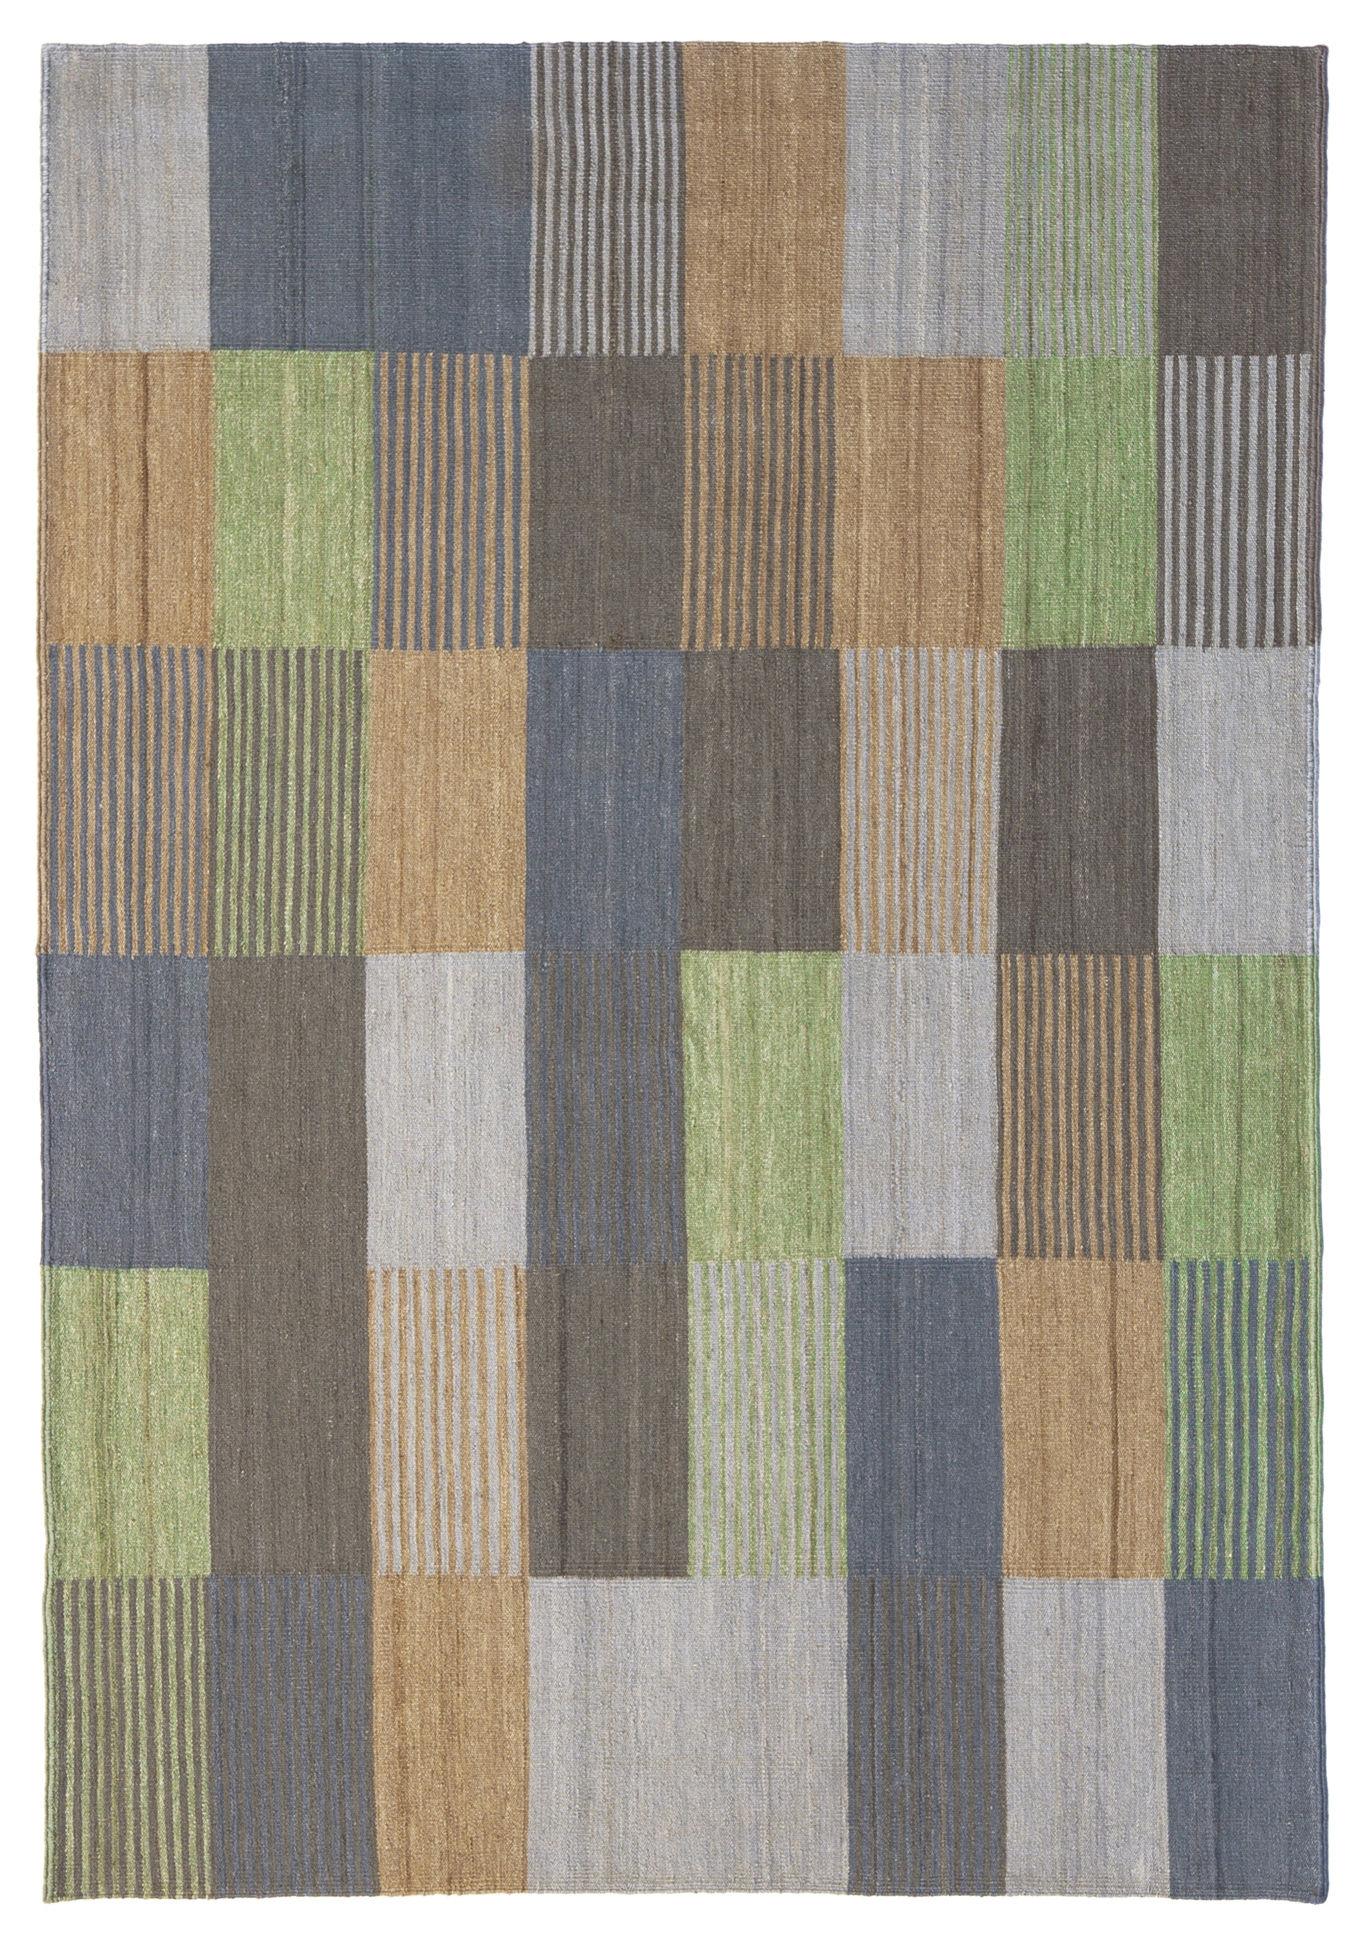 Decoration - Rugs - Blend 3 Rug - 200 x 300 cm by Nanimarquina - Green & blue - Afghan wool